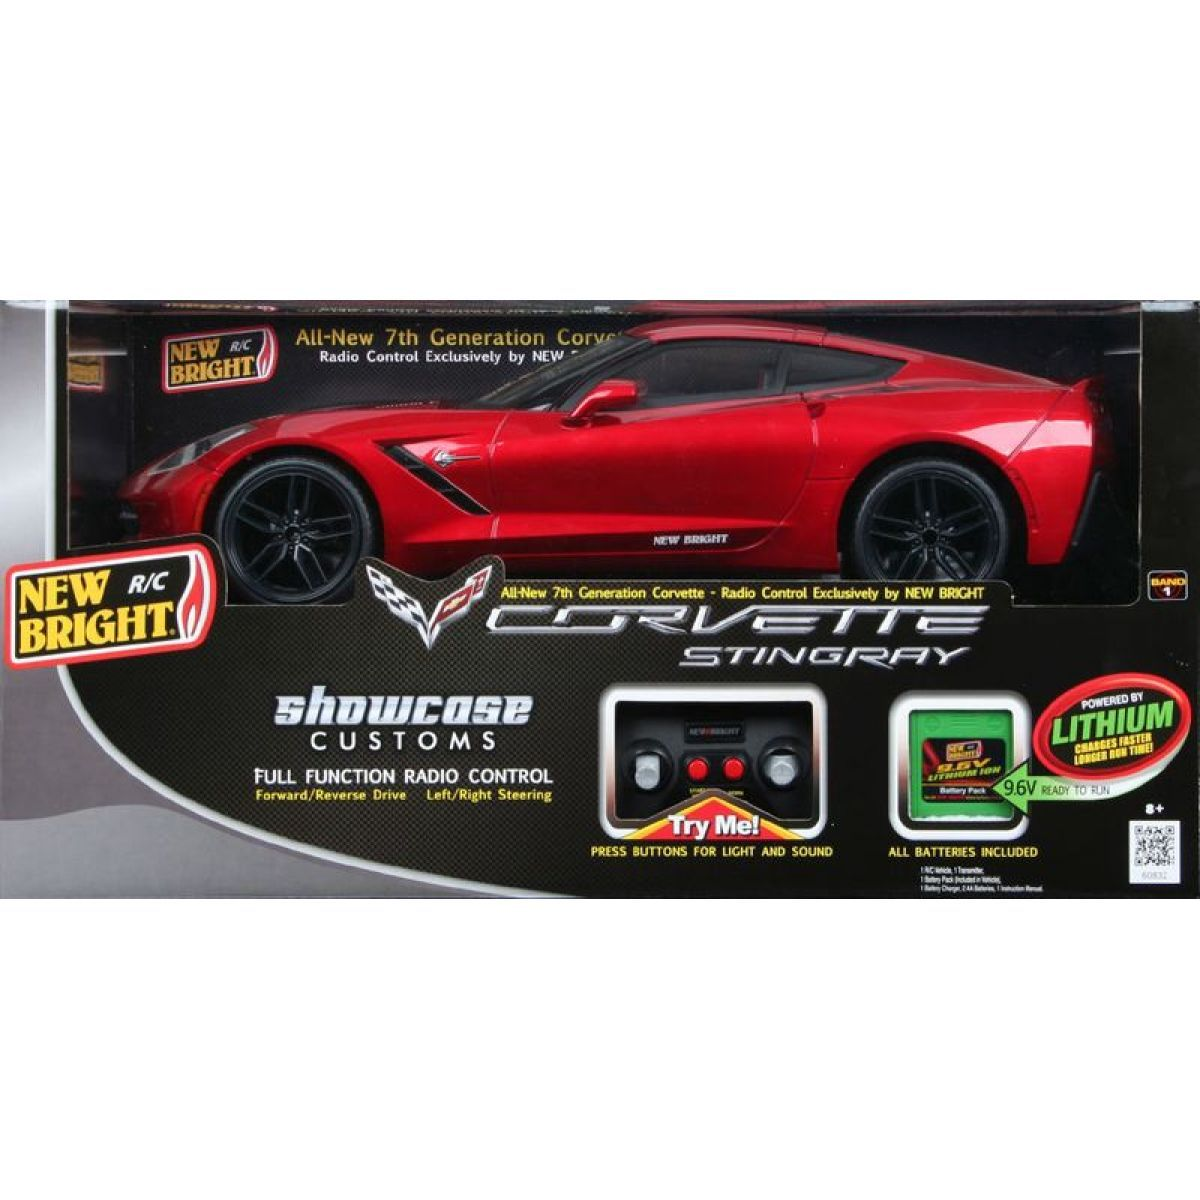 pro rc cars with New Bright Rc Corvette C7 on Audi E Bike Electric Bike Hd Wallpapers also Transformers Bumblebee Coloring Pages For Kids further Ford Crown Victoria Black additionally 53826 C Hud Navi likewise Losi Baja Rey Desert Truck.